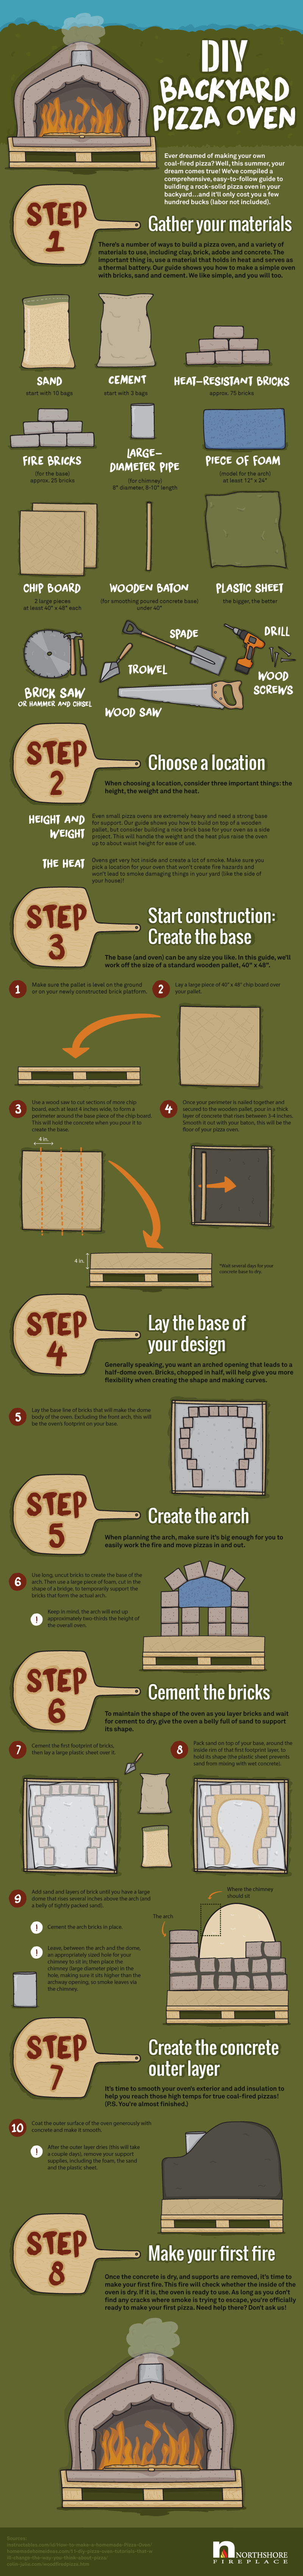 diy infographic example